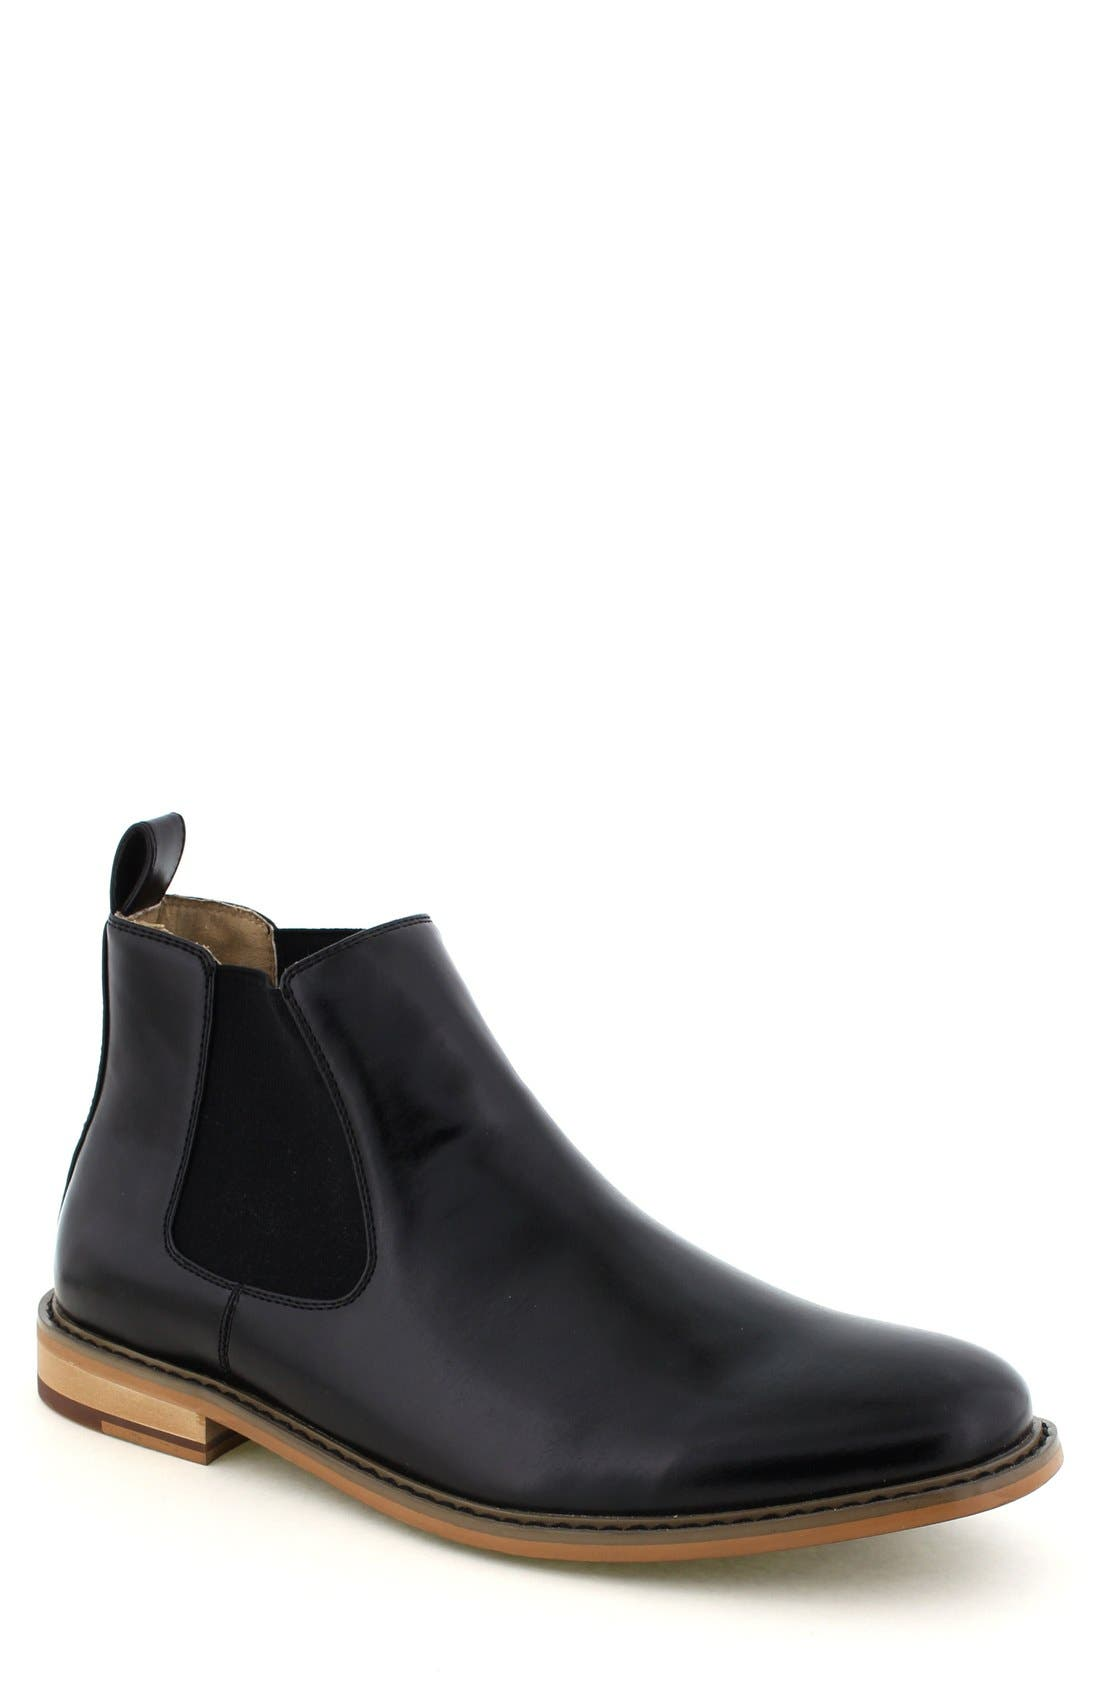 DEER STAGS 'Tribeca' Chelsea Boot